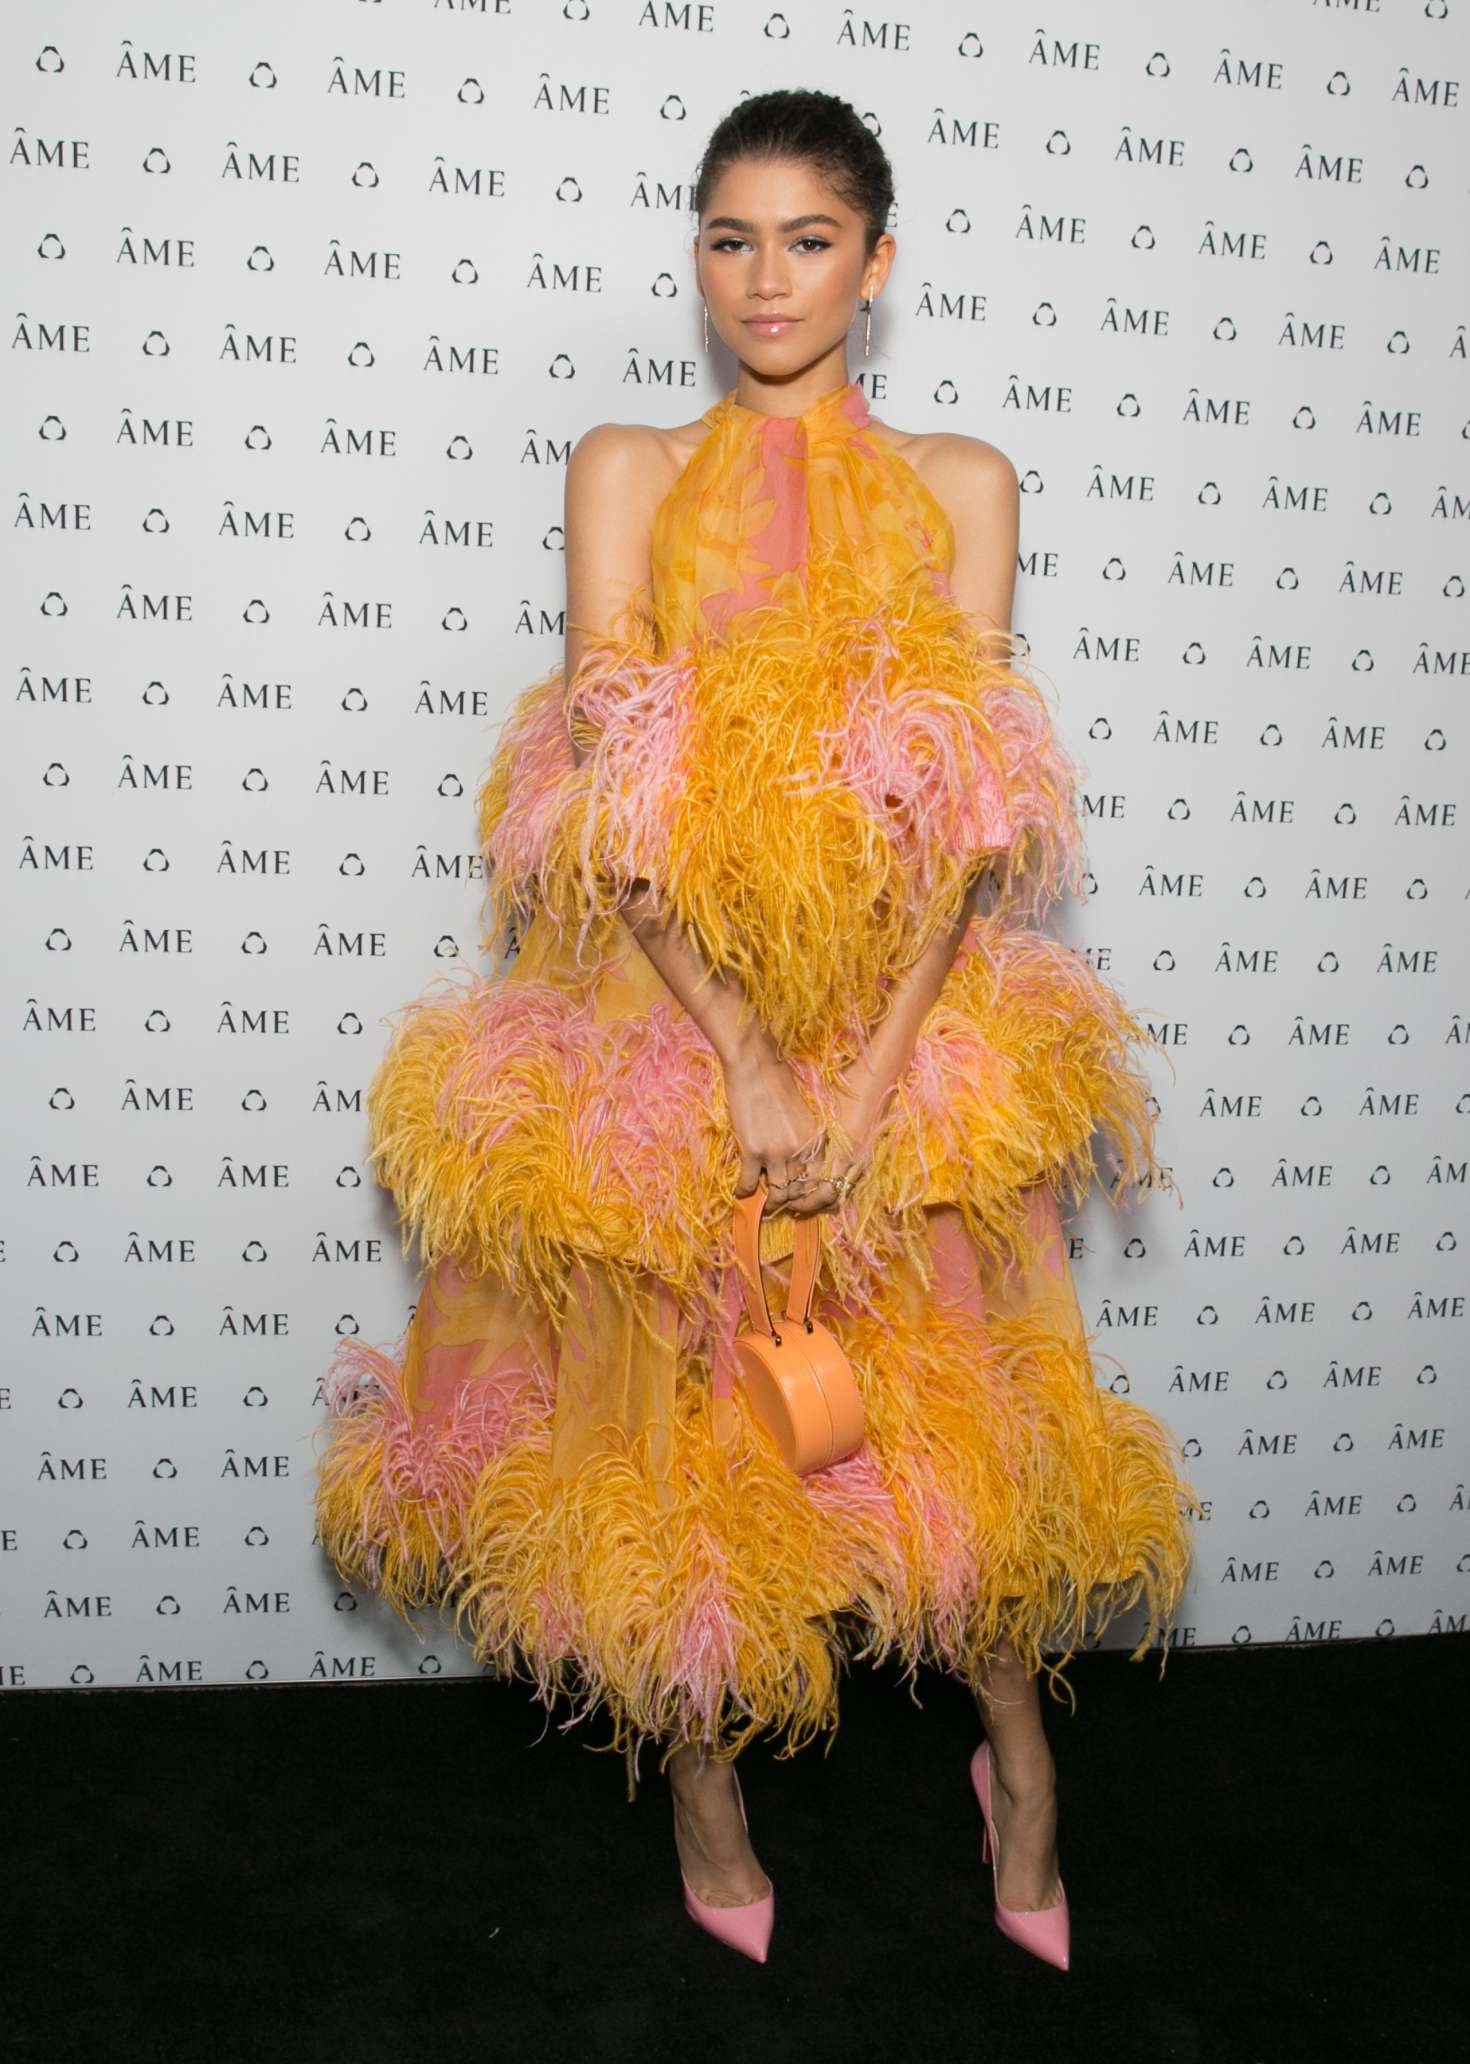 Zendaya - Ame Jewelry Launch Event in Los Angeles